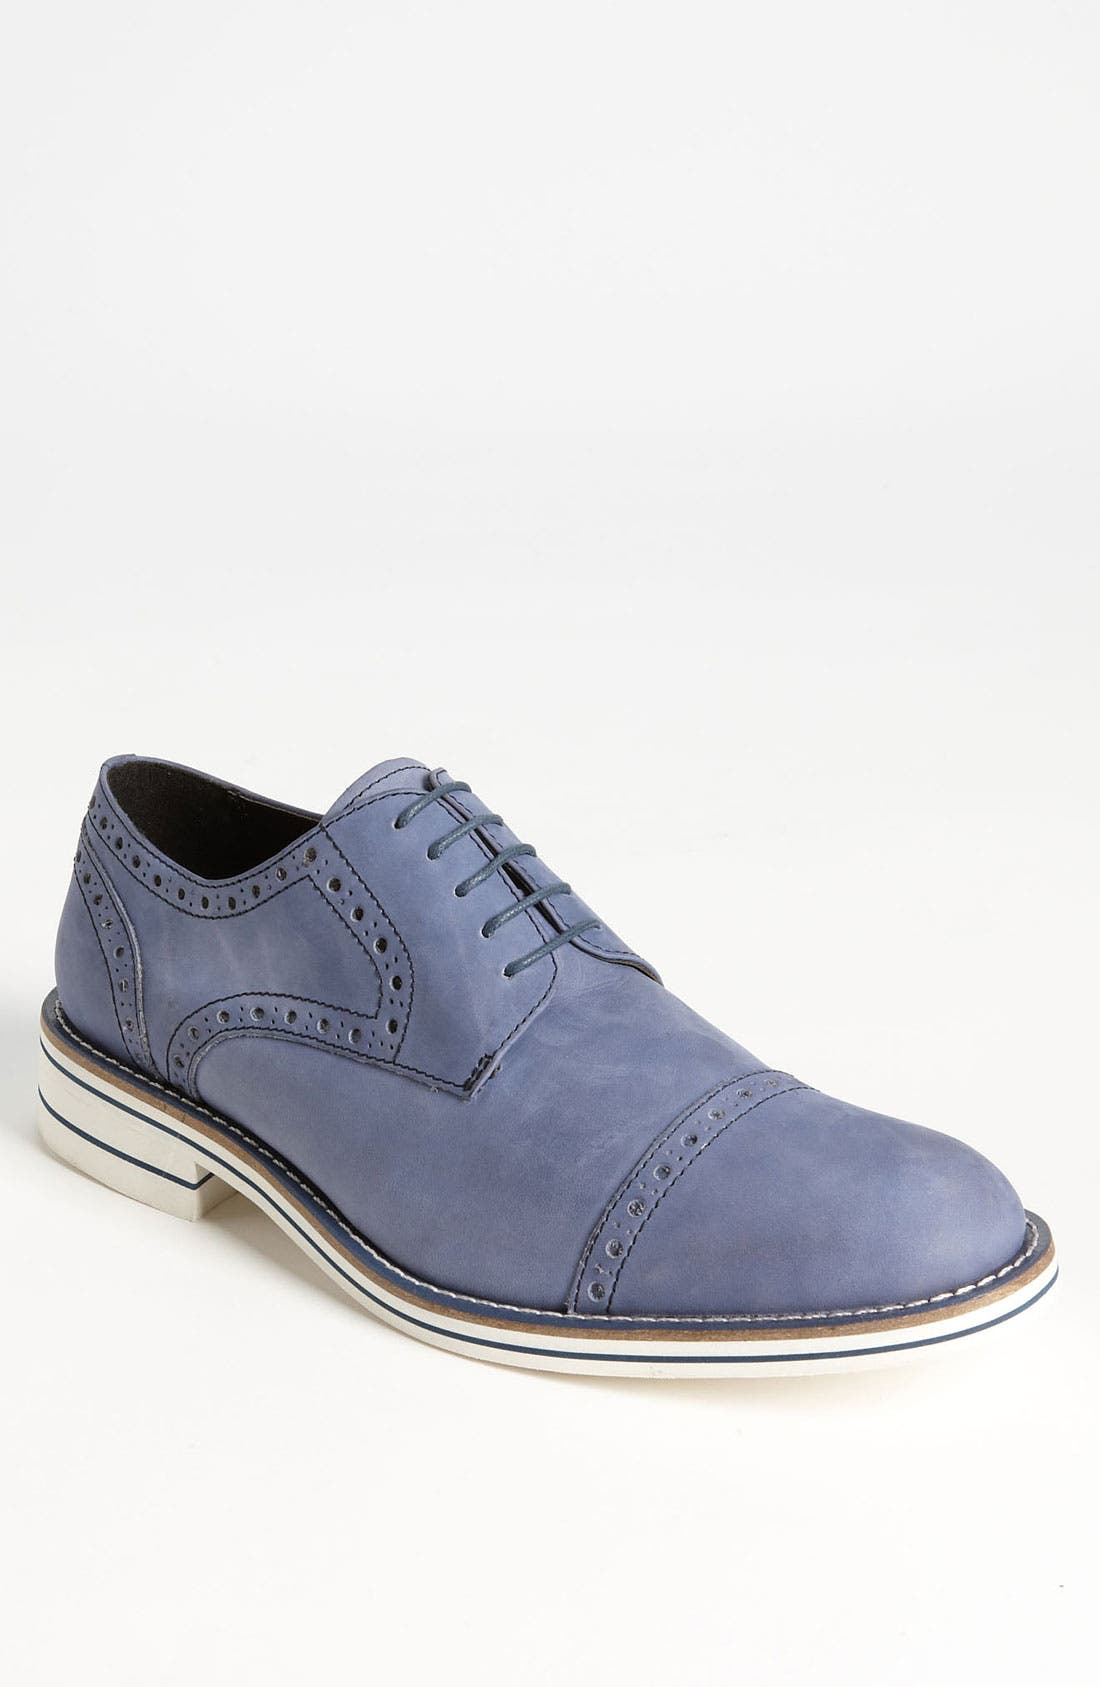 Alternate Image 1 Selected - Kenneth Cole New York 'More 2 Follow' Derby